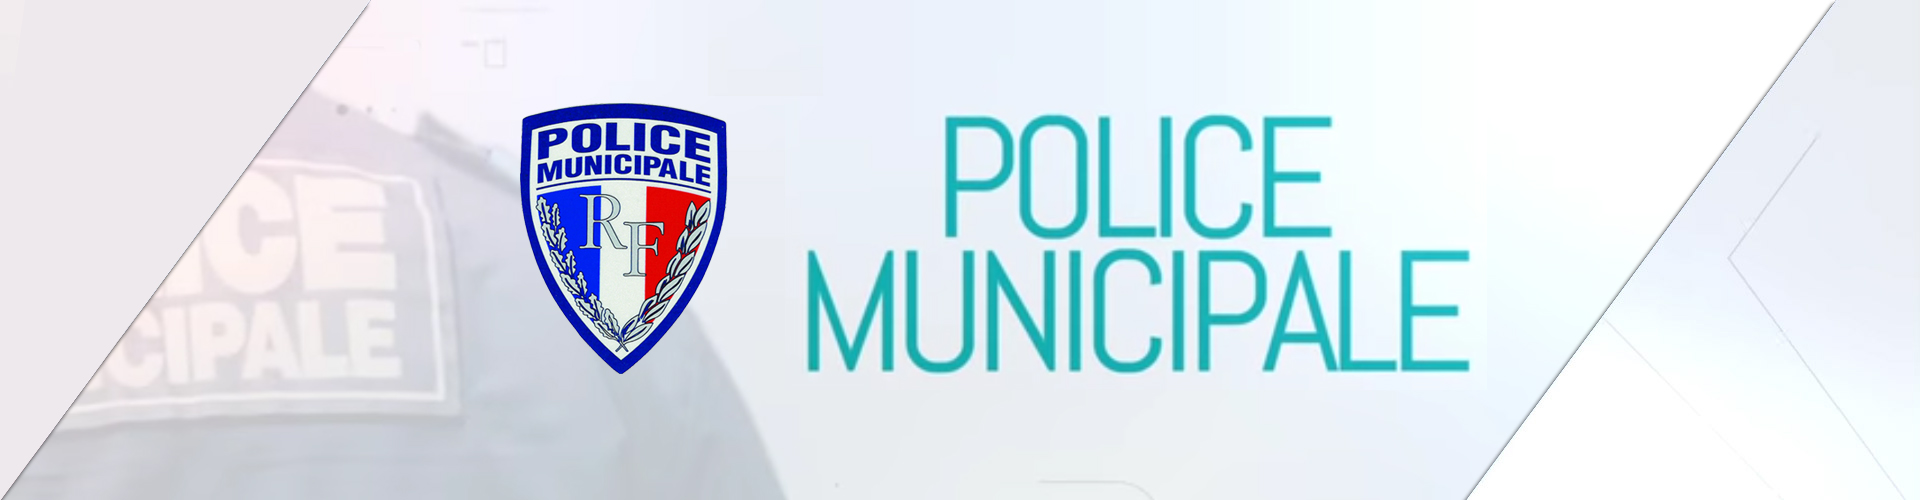 formation police municipale